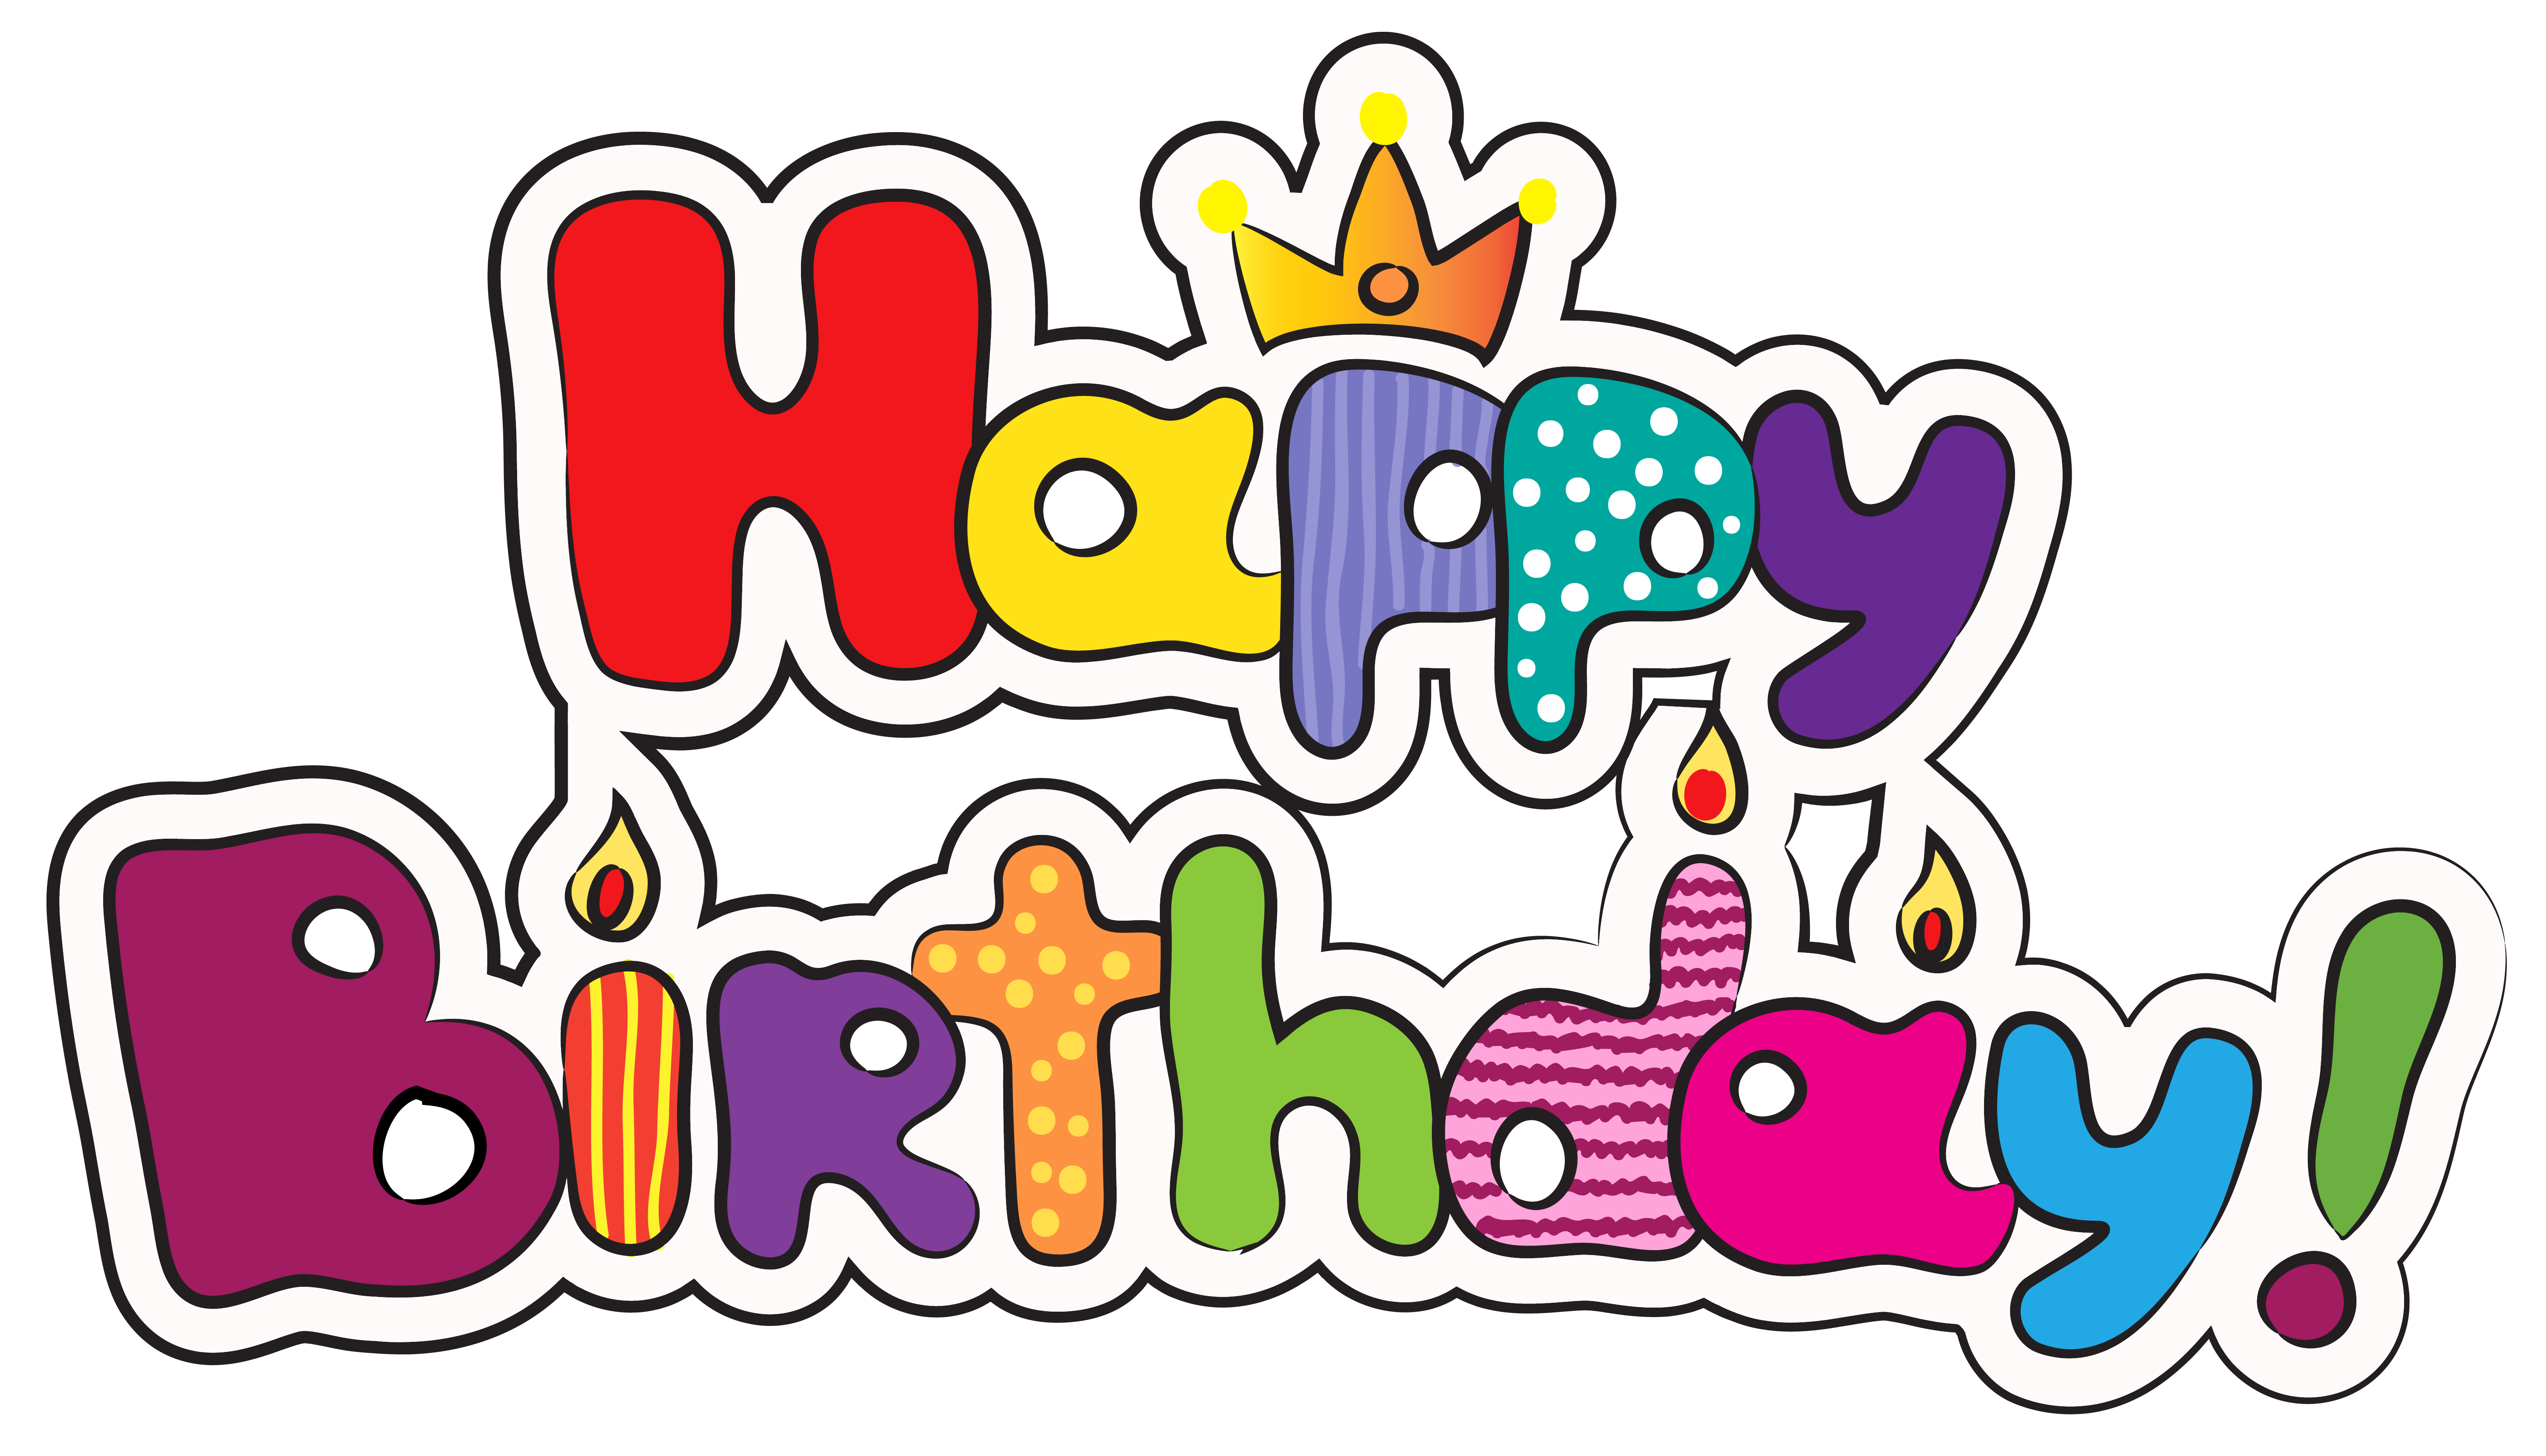 clipart library library Colorful png image gallery. Clipart happy birthday